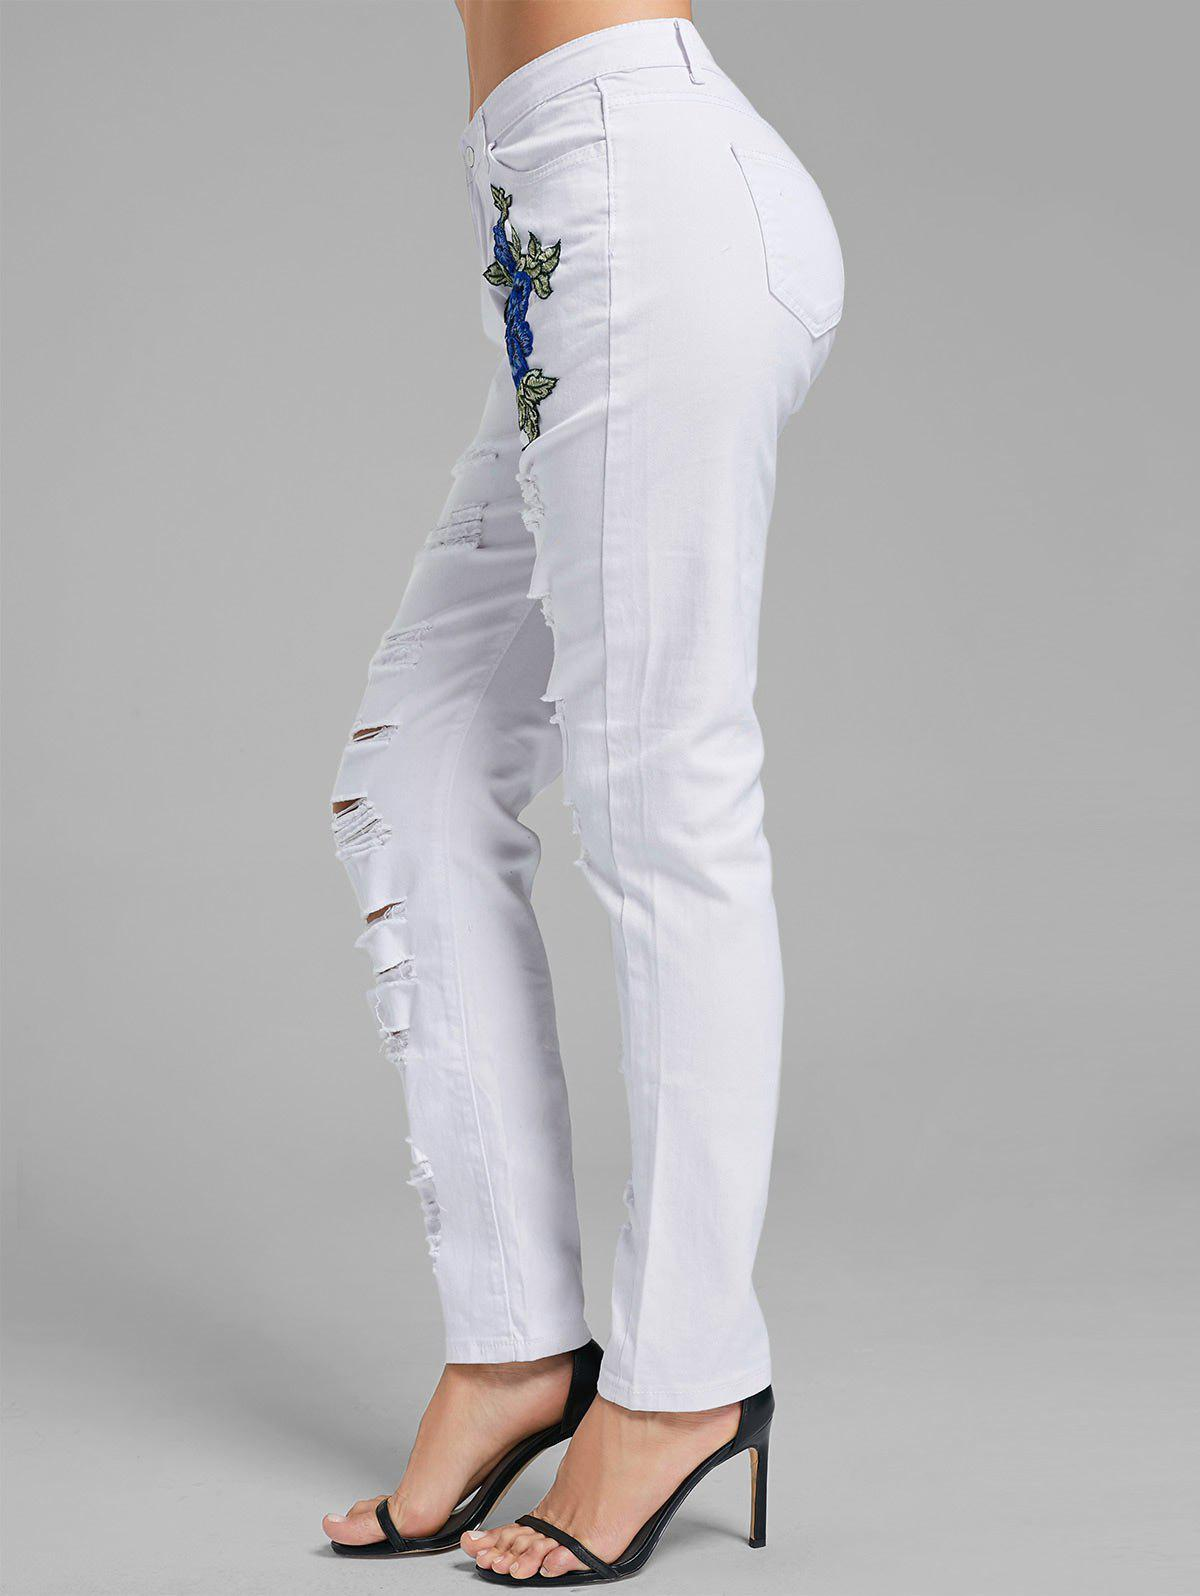 Floral Embroidered Ripped Denim Pants - WHITE M